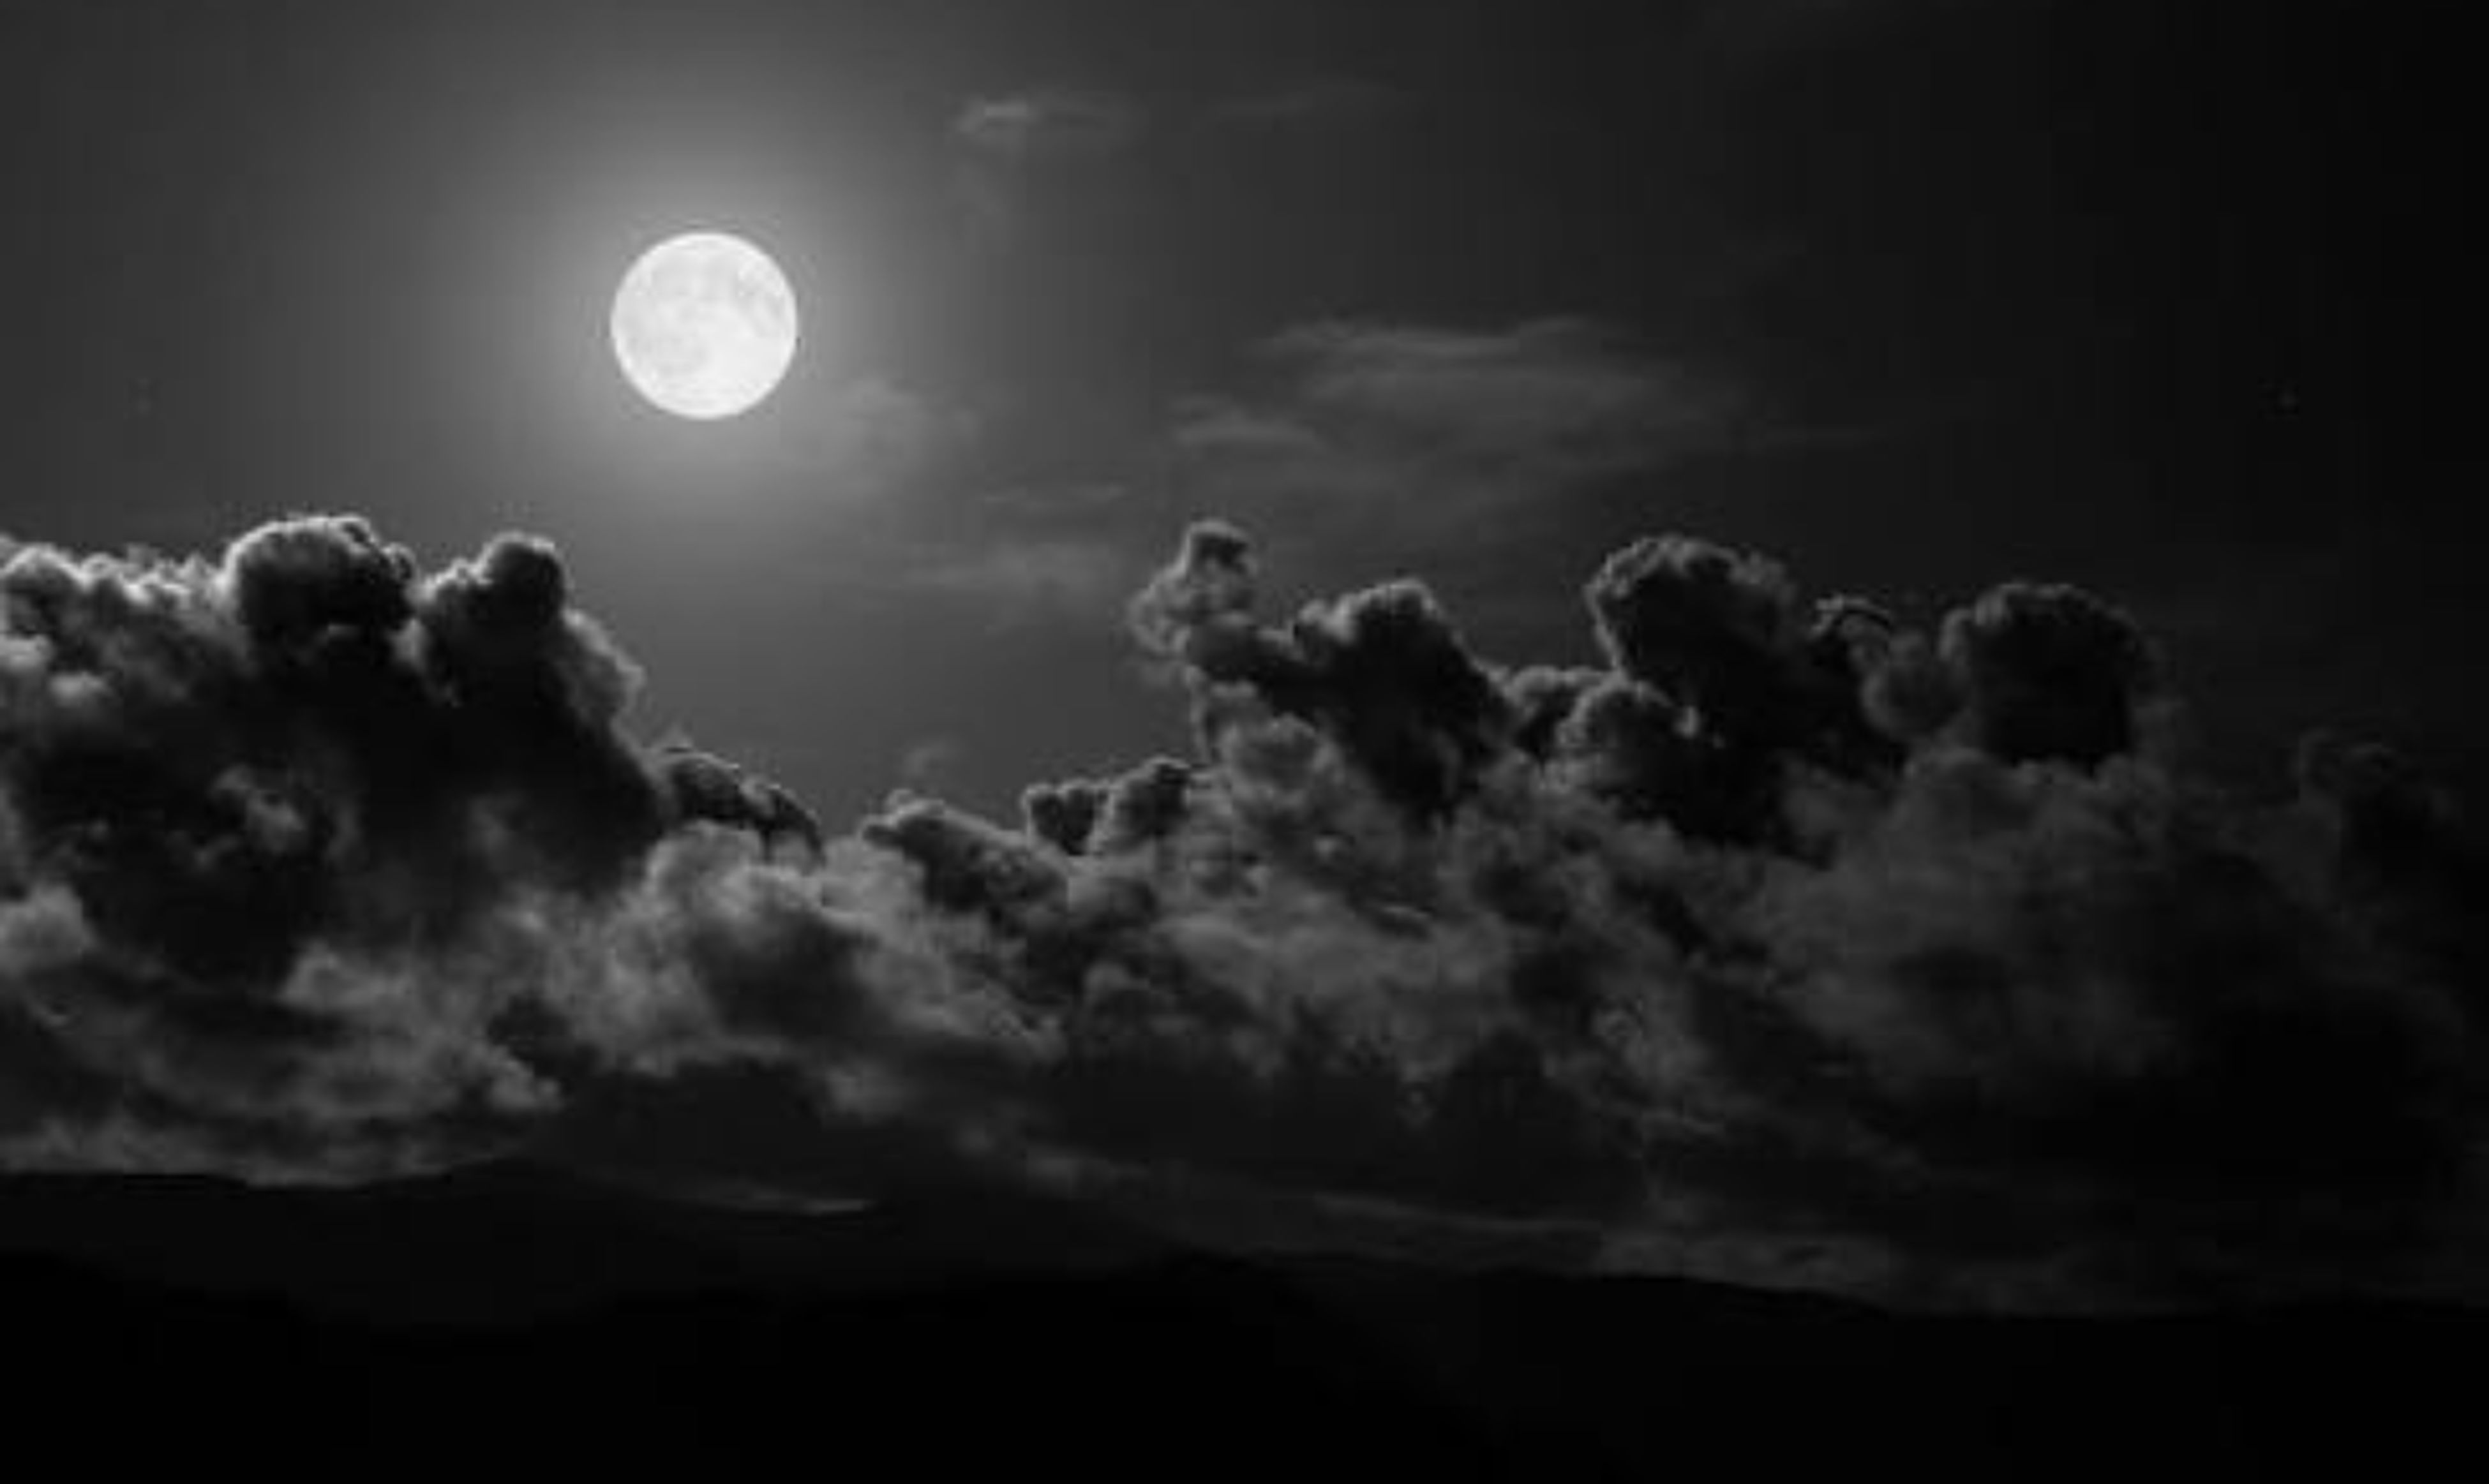 scenics, beauty in nature, majestic, tranquil scene, tranquility, cloud, nature, sky, moon, sun, low angle view, cloudscape, cloud - sky, dramatic sky, dark, outdoors, atmosphere, day, atmospheric mood, high up, no people, high section, dreamlike, meteorology